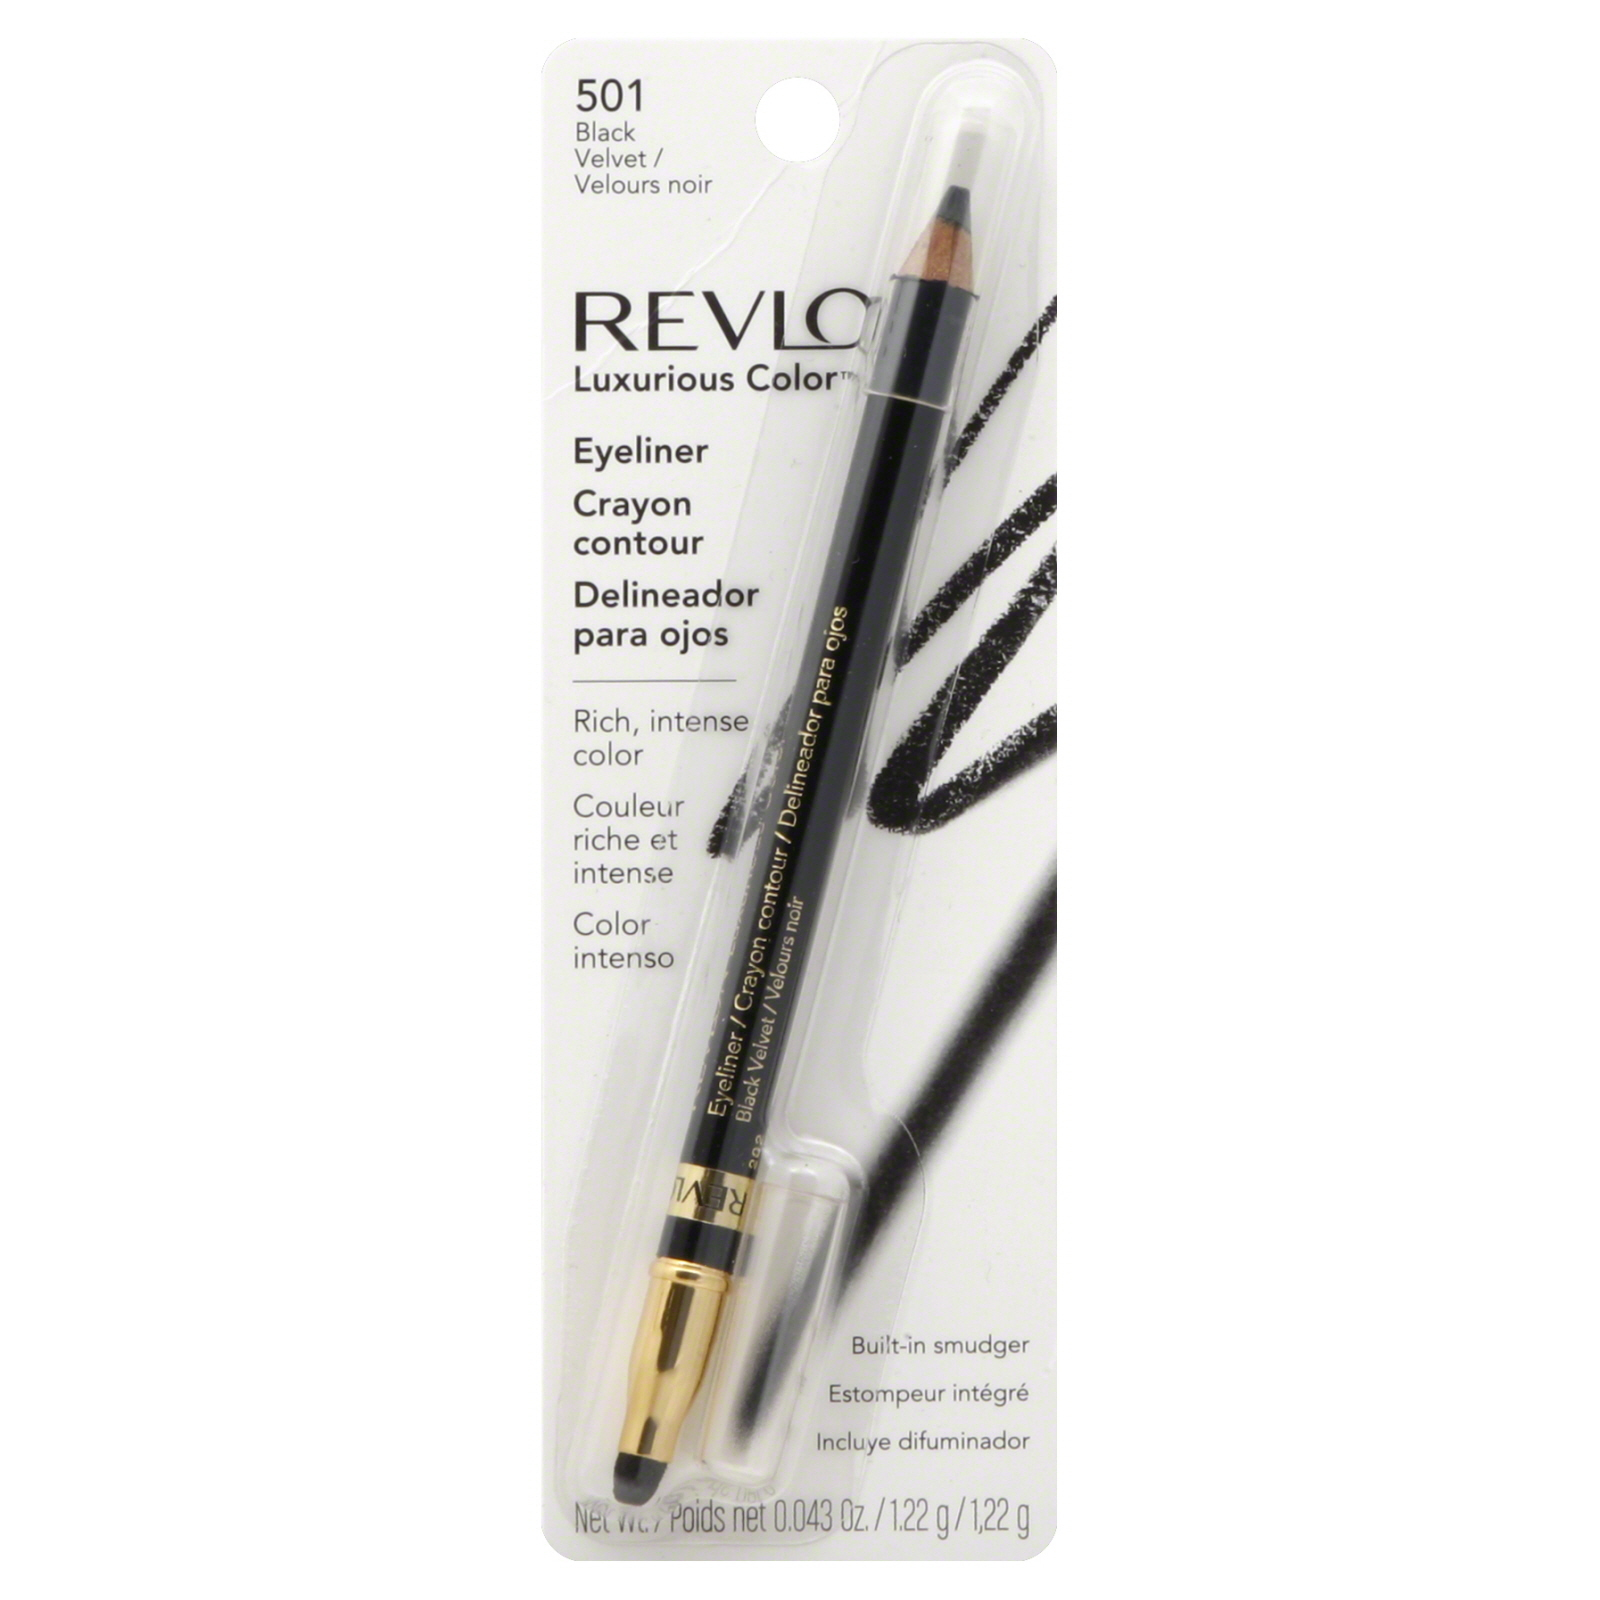 Primary image for Revlon Luxurious Colour Eyeliner, Black Velvet 501, 0ml